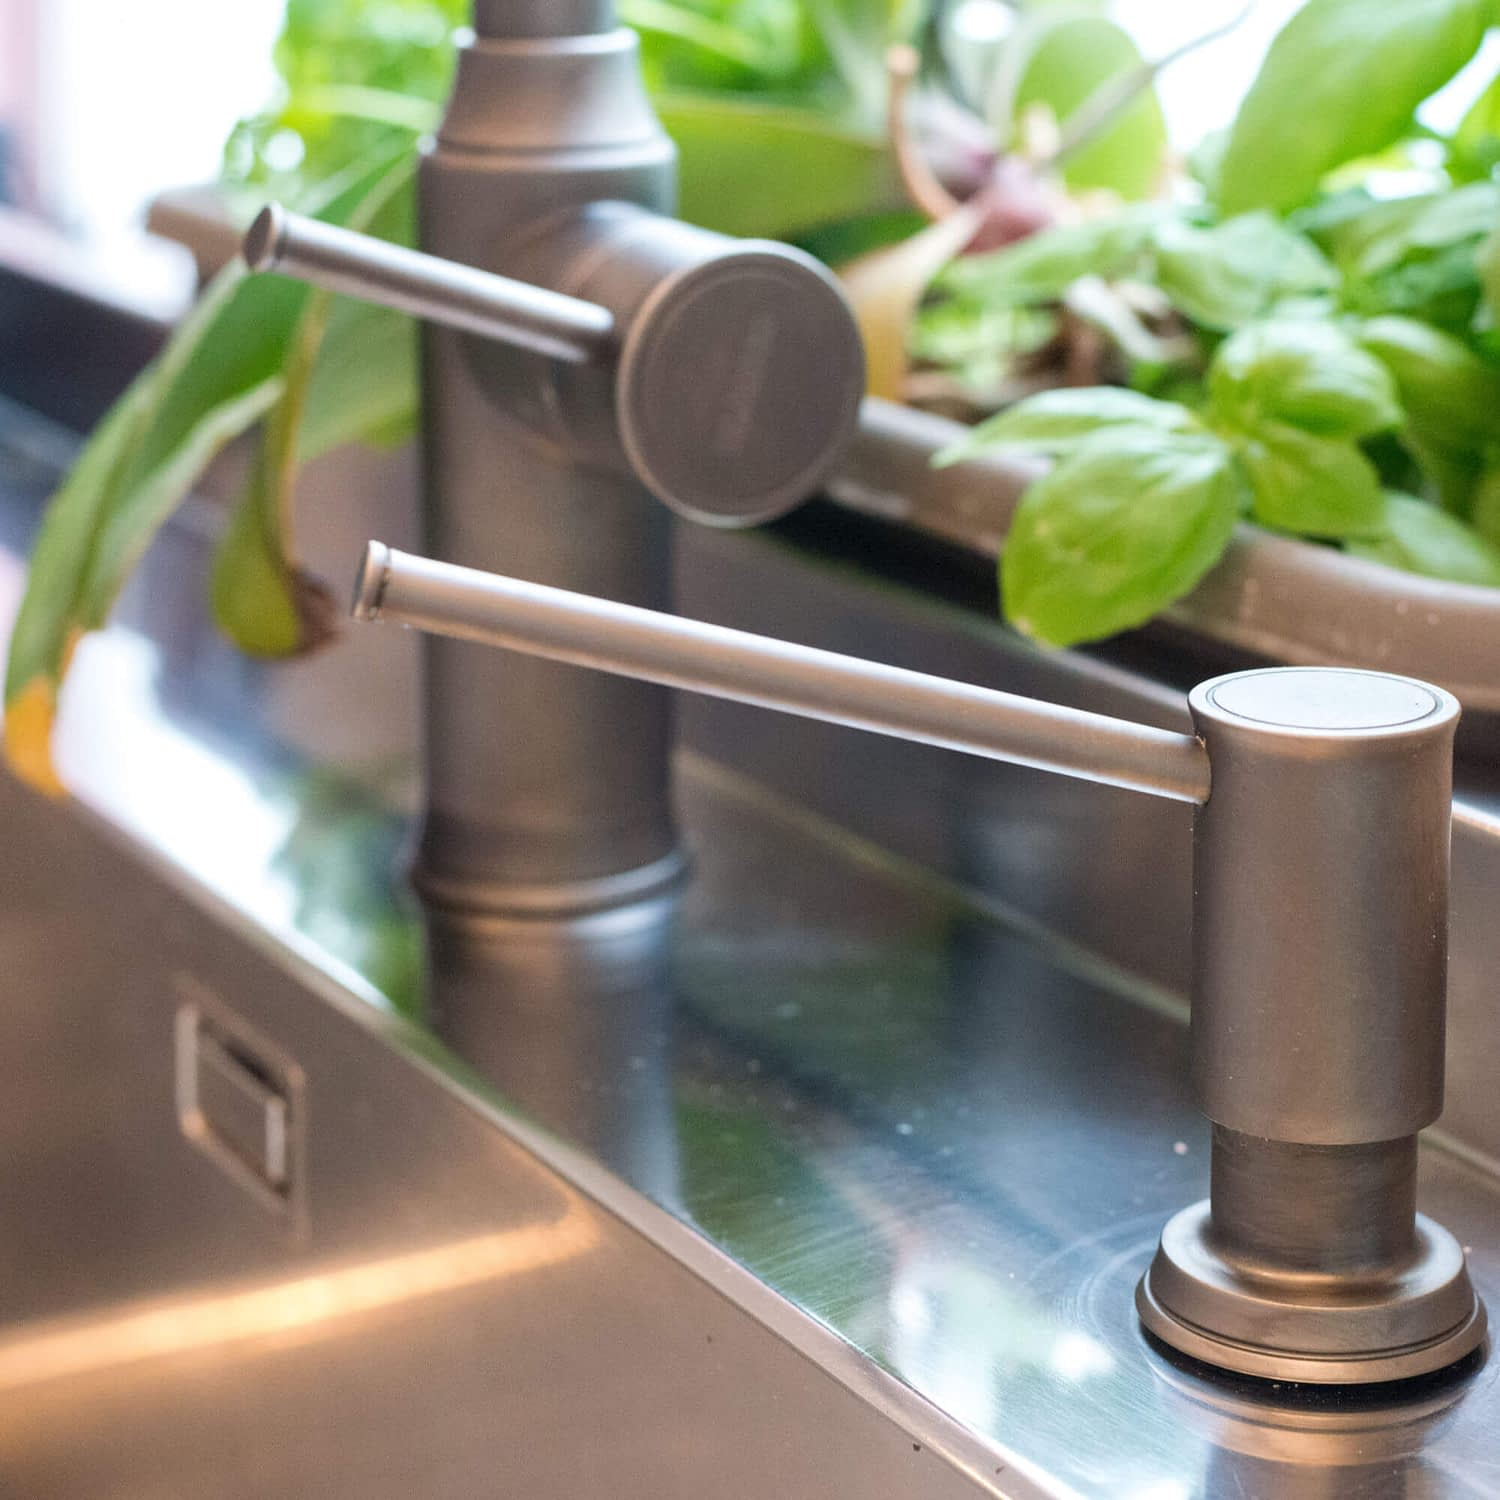 Stainless Steel Sink and Tap Detail